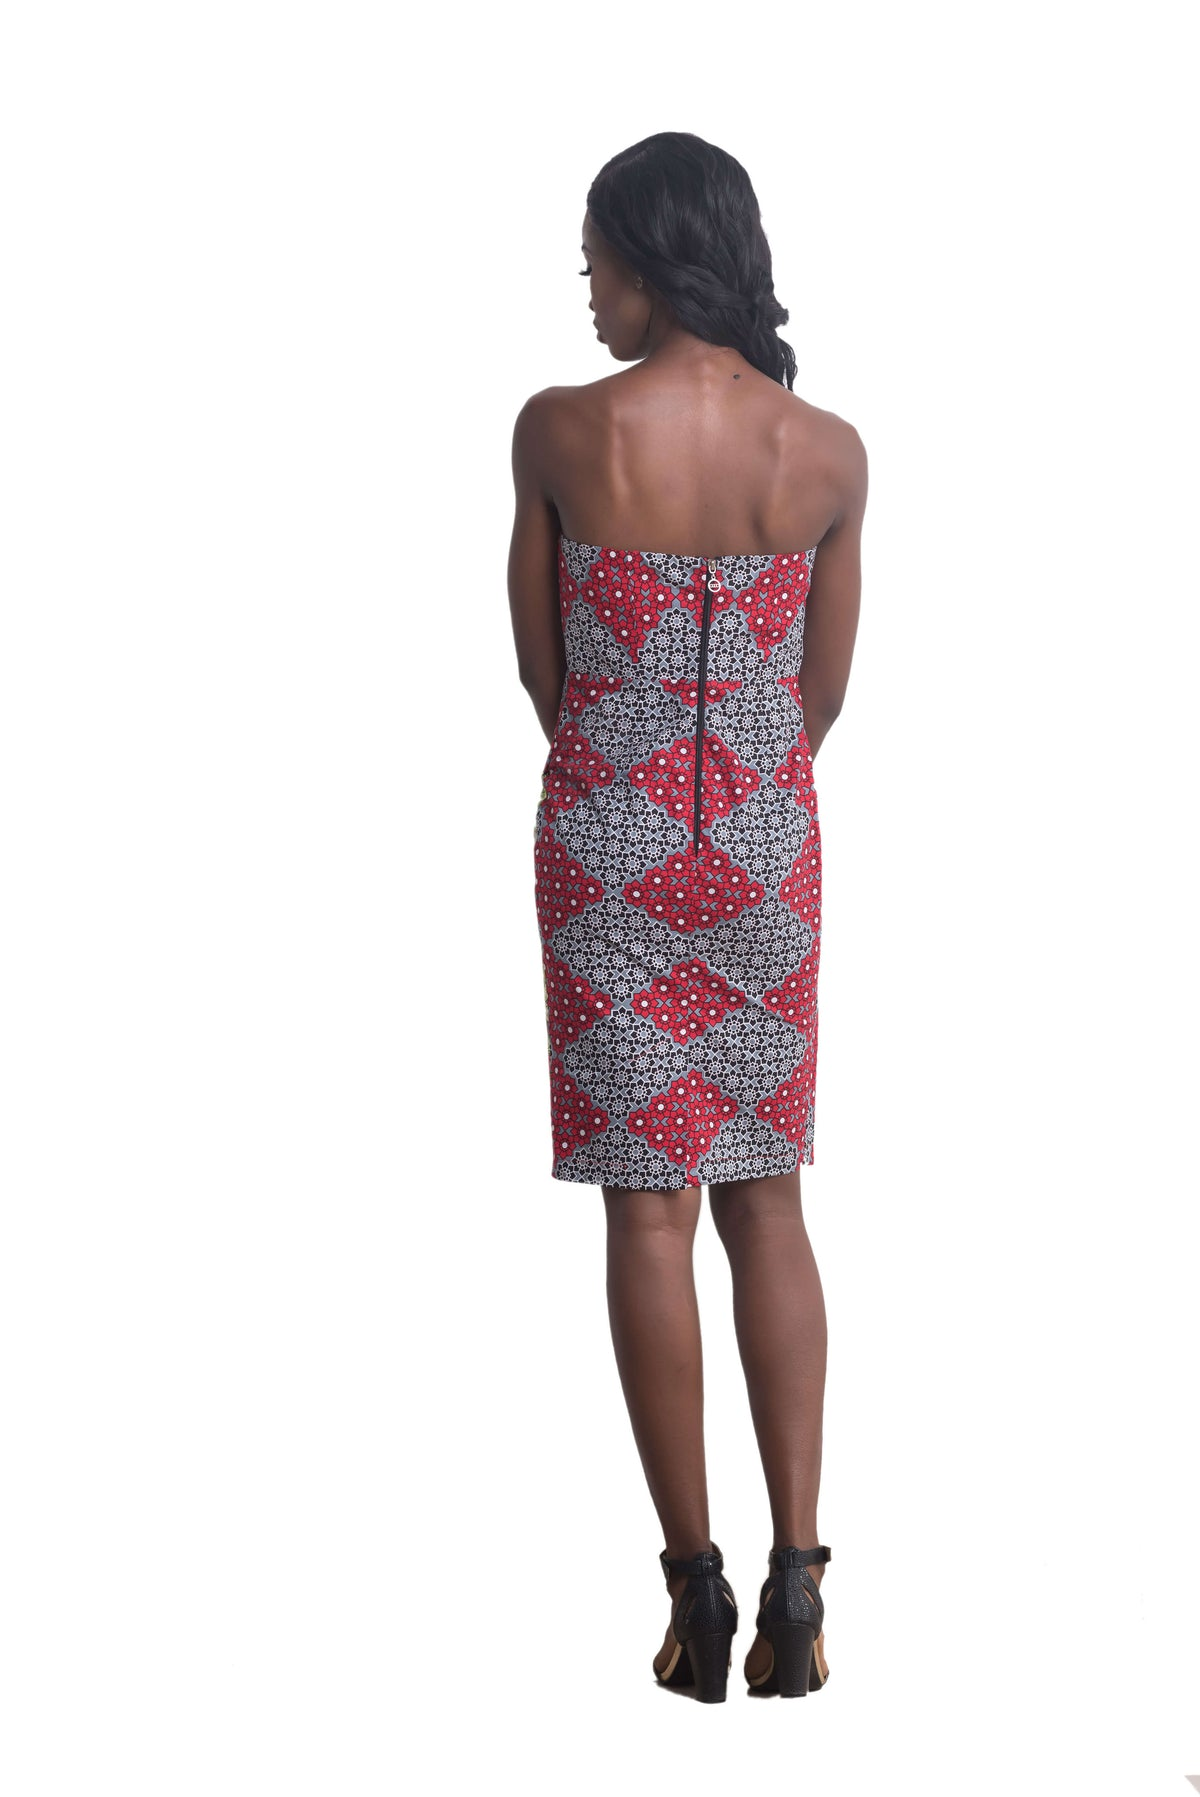 Women wearing Ankarage Women African Print Sisi Eko Faux Wrap Dress (Red on Pink) Ankara Dress Back View